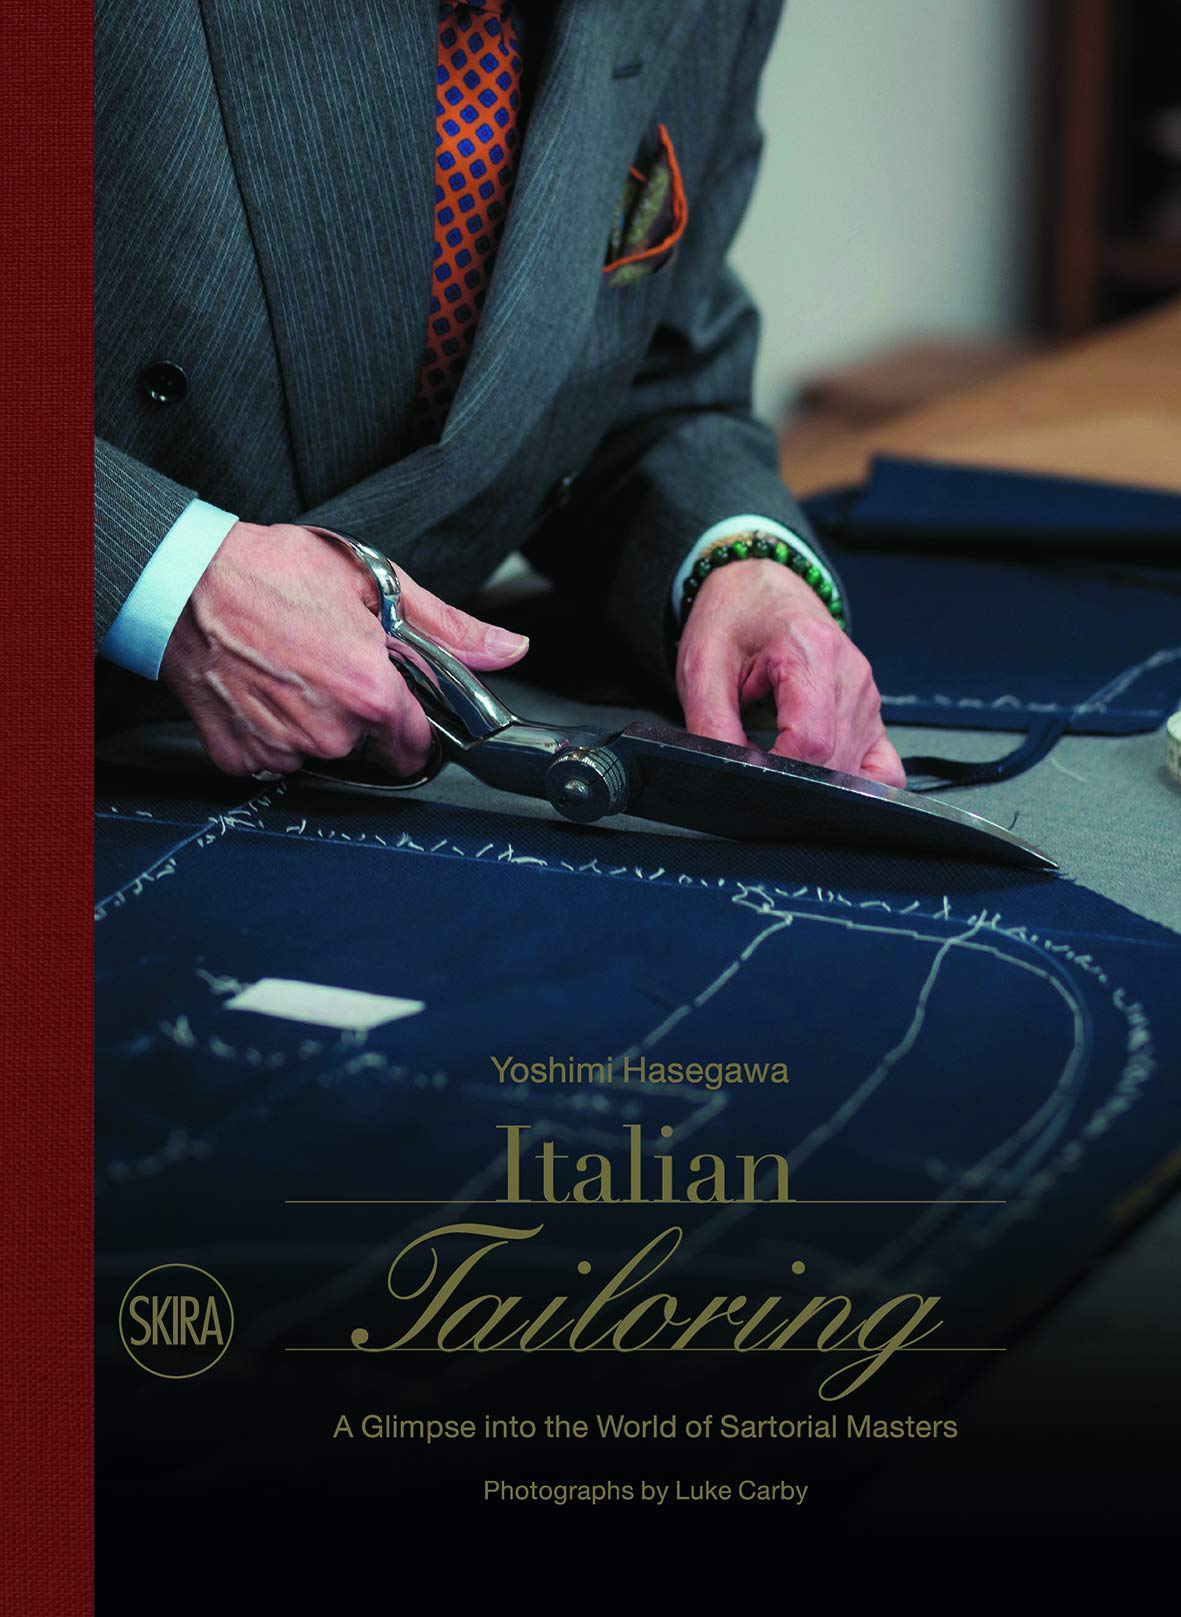 Italian Tailoring: A Glimpse into the World of Sartorial Masters by Skira (Image #1)